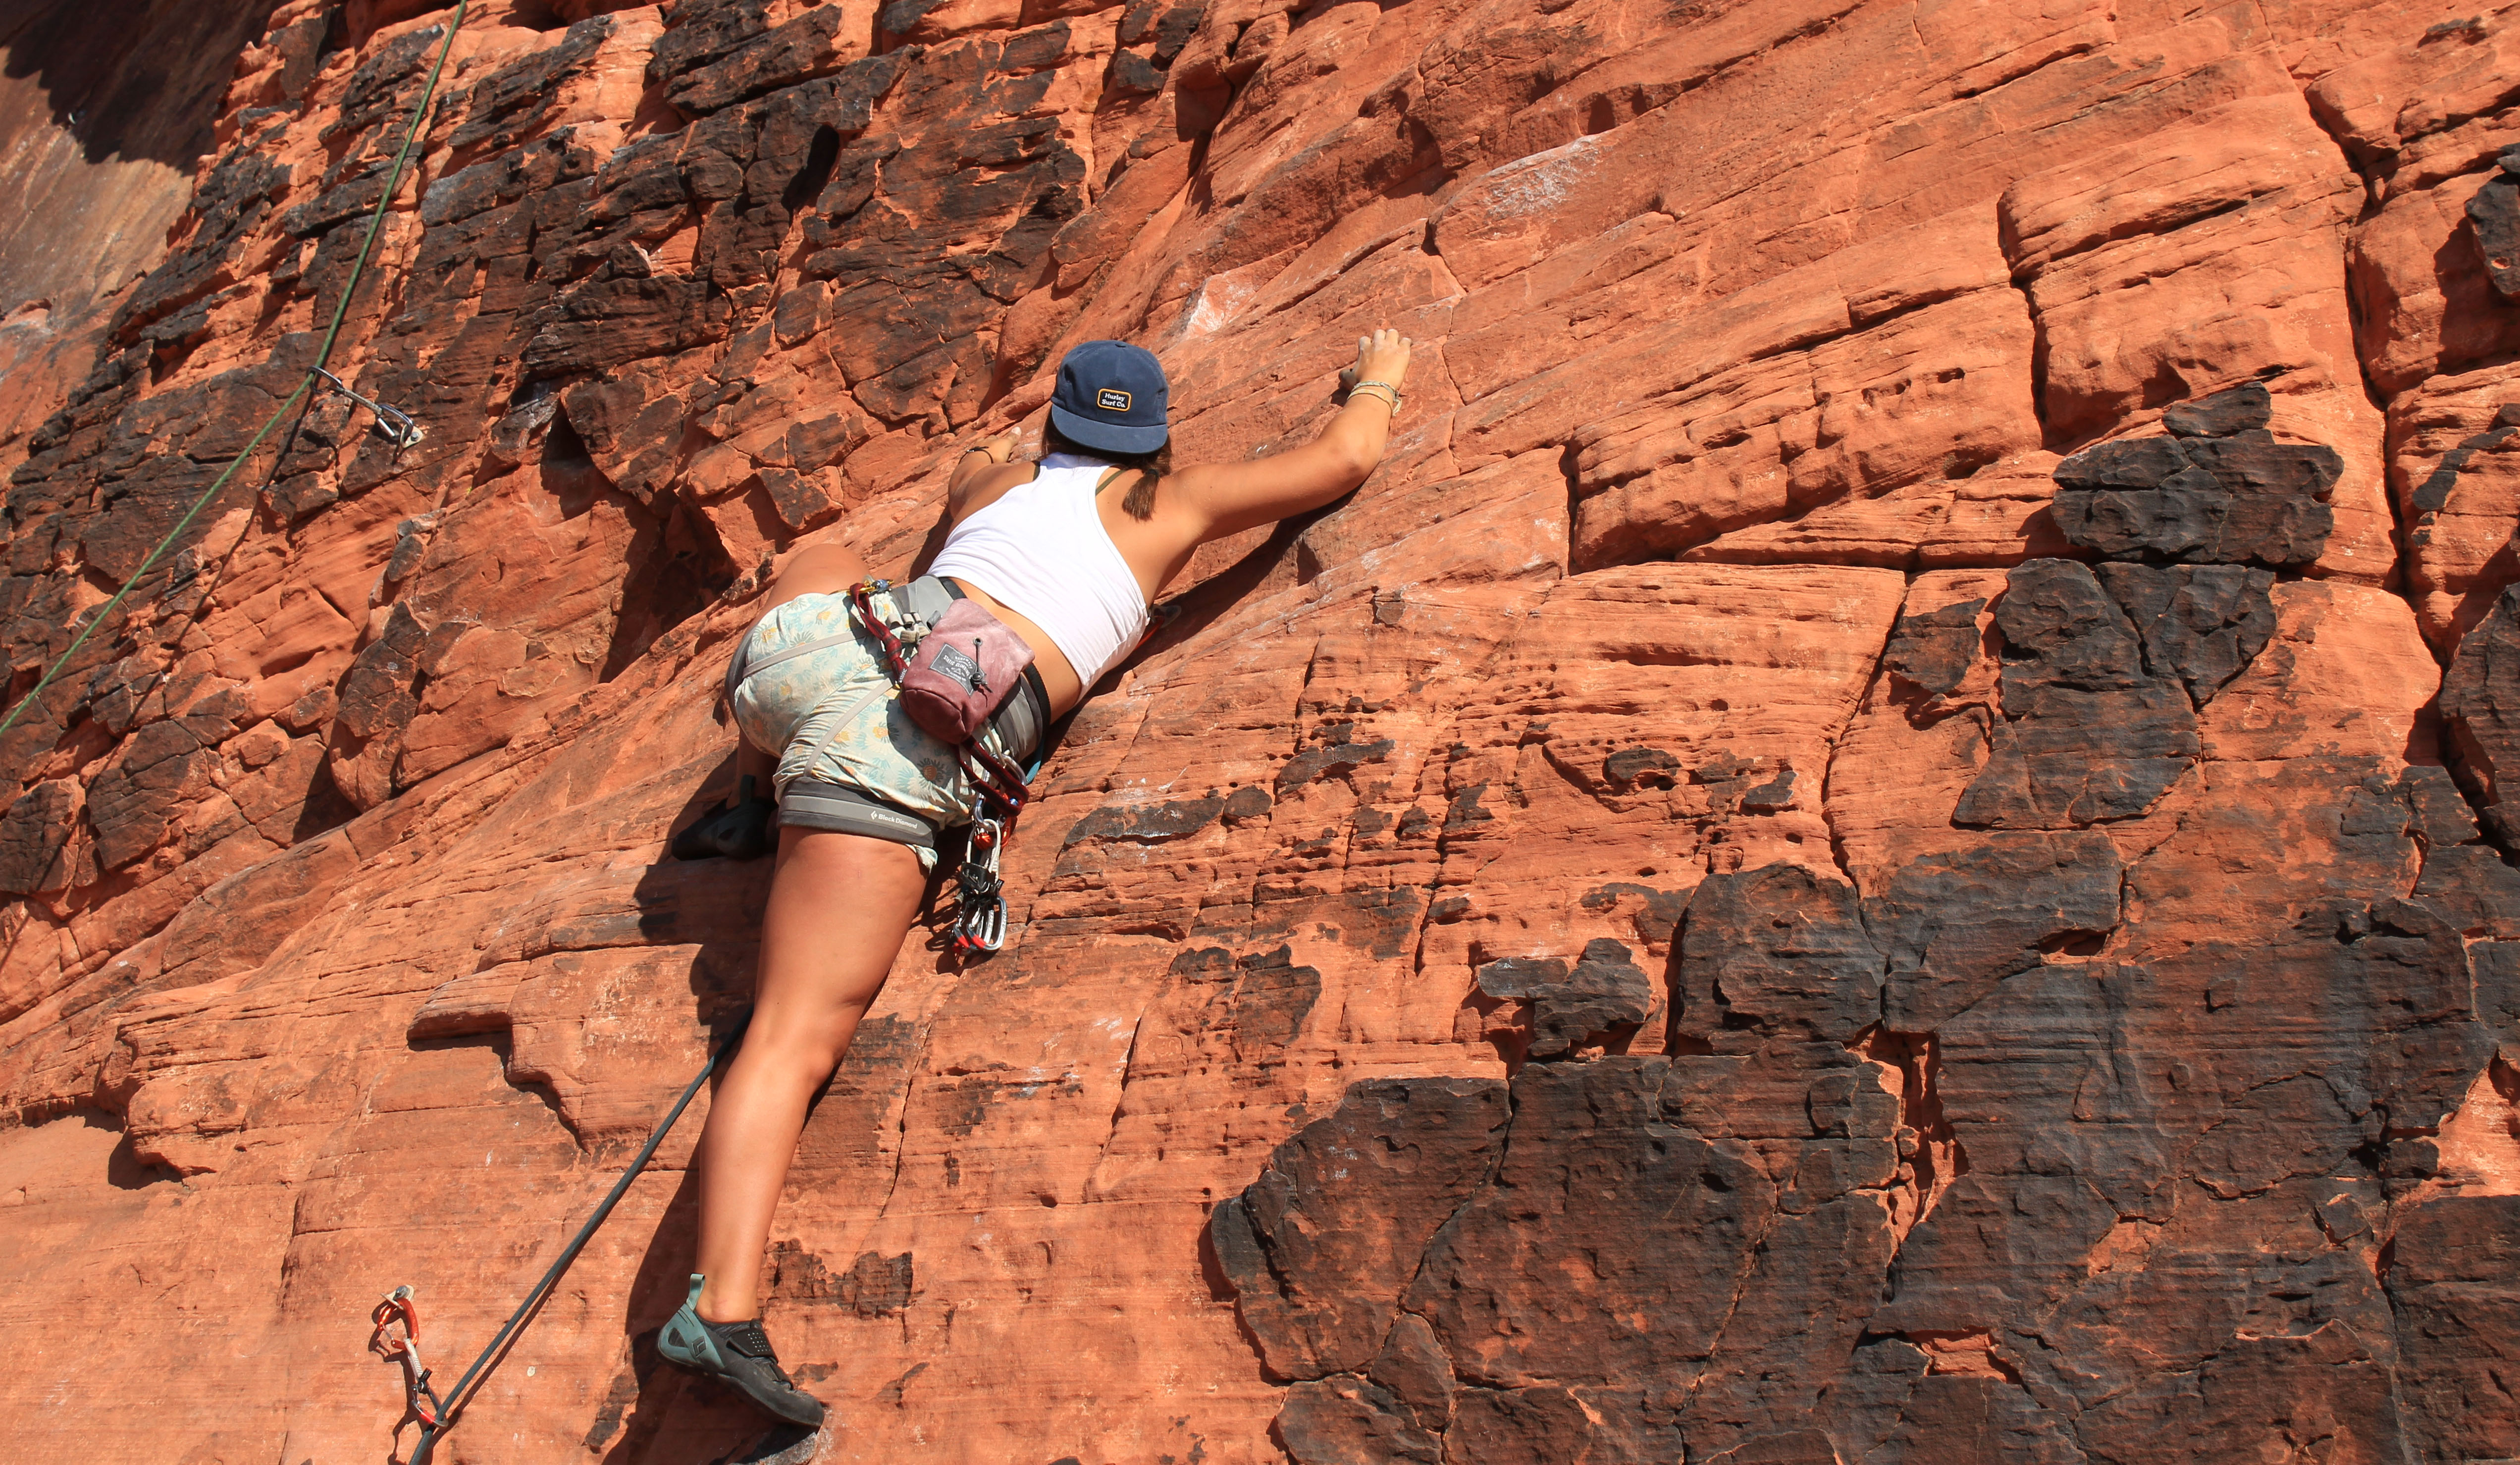 Eva Huber made time for rock climbing during her study abroad visit to Nepal.